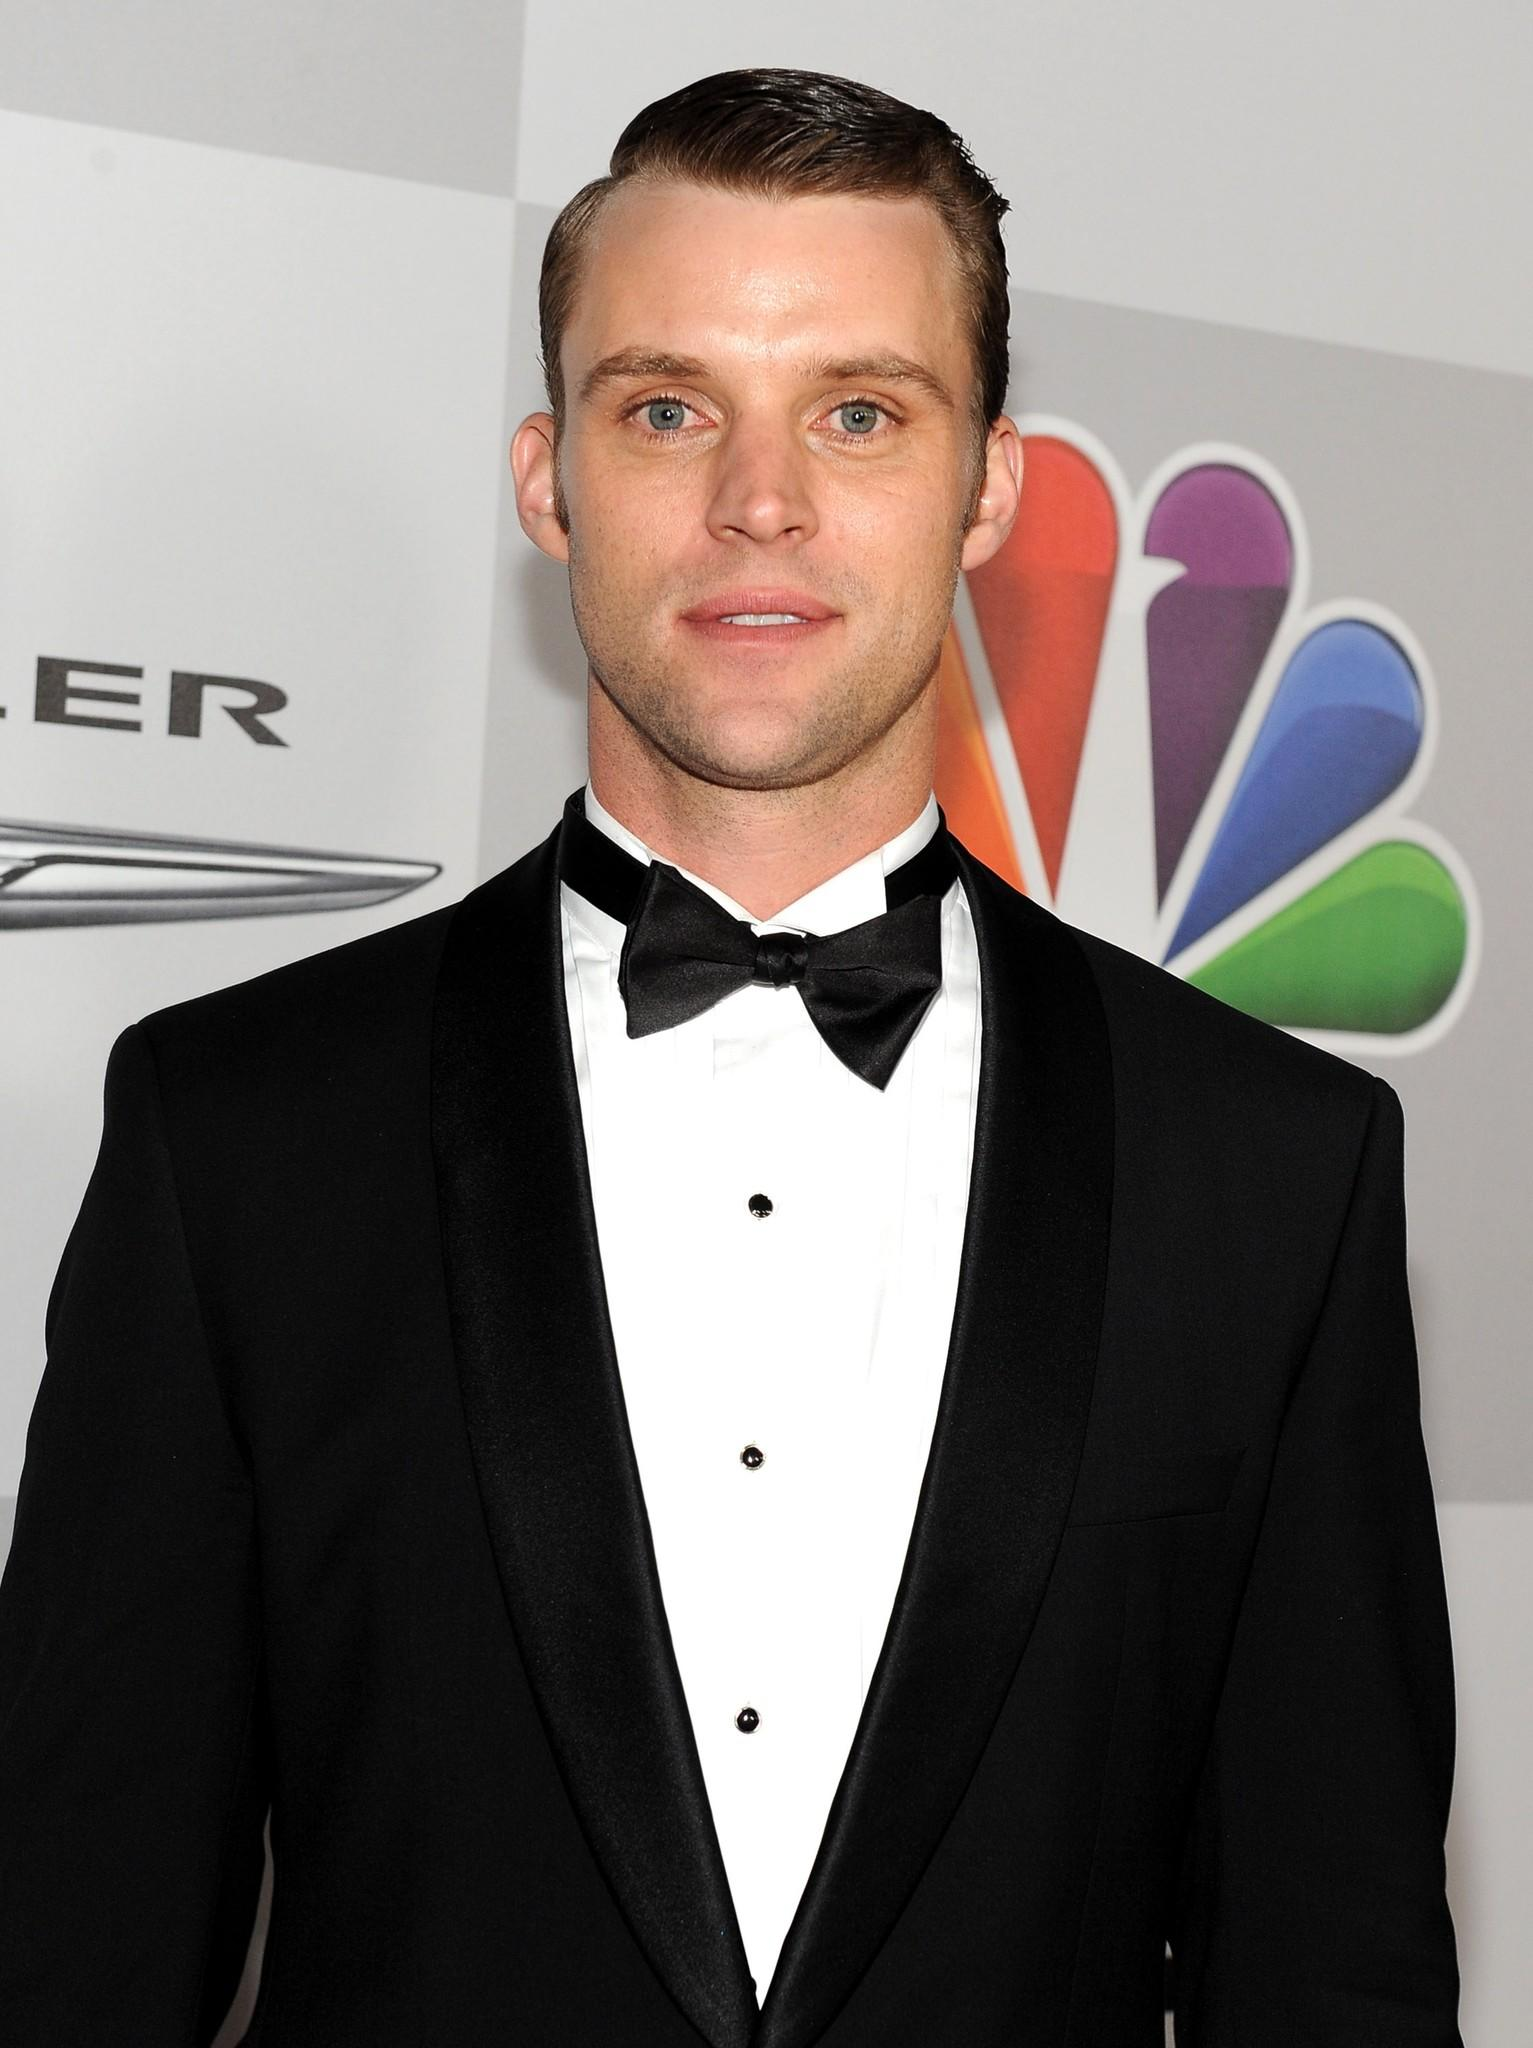 Jesse Spencer turns 35 on Wednesday, Feb. 12.